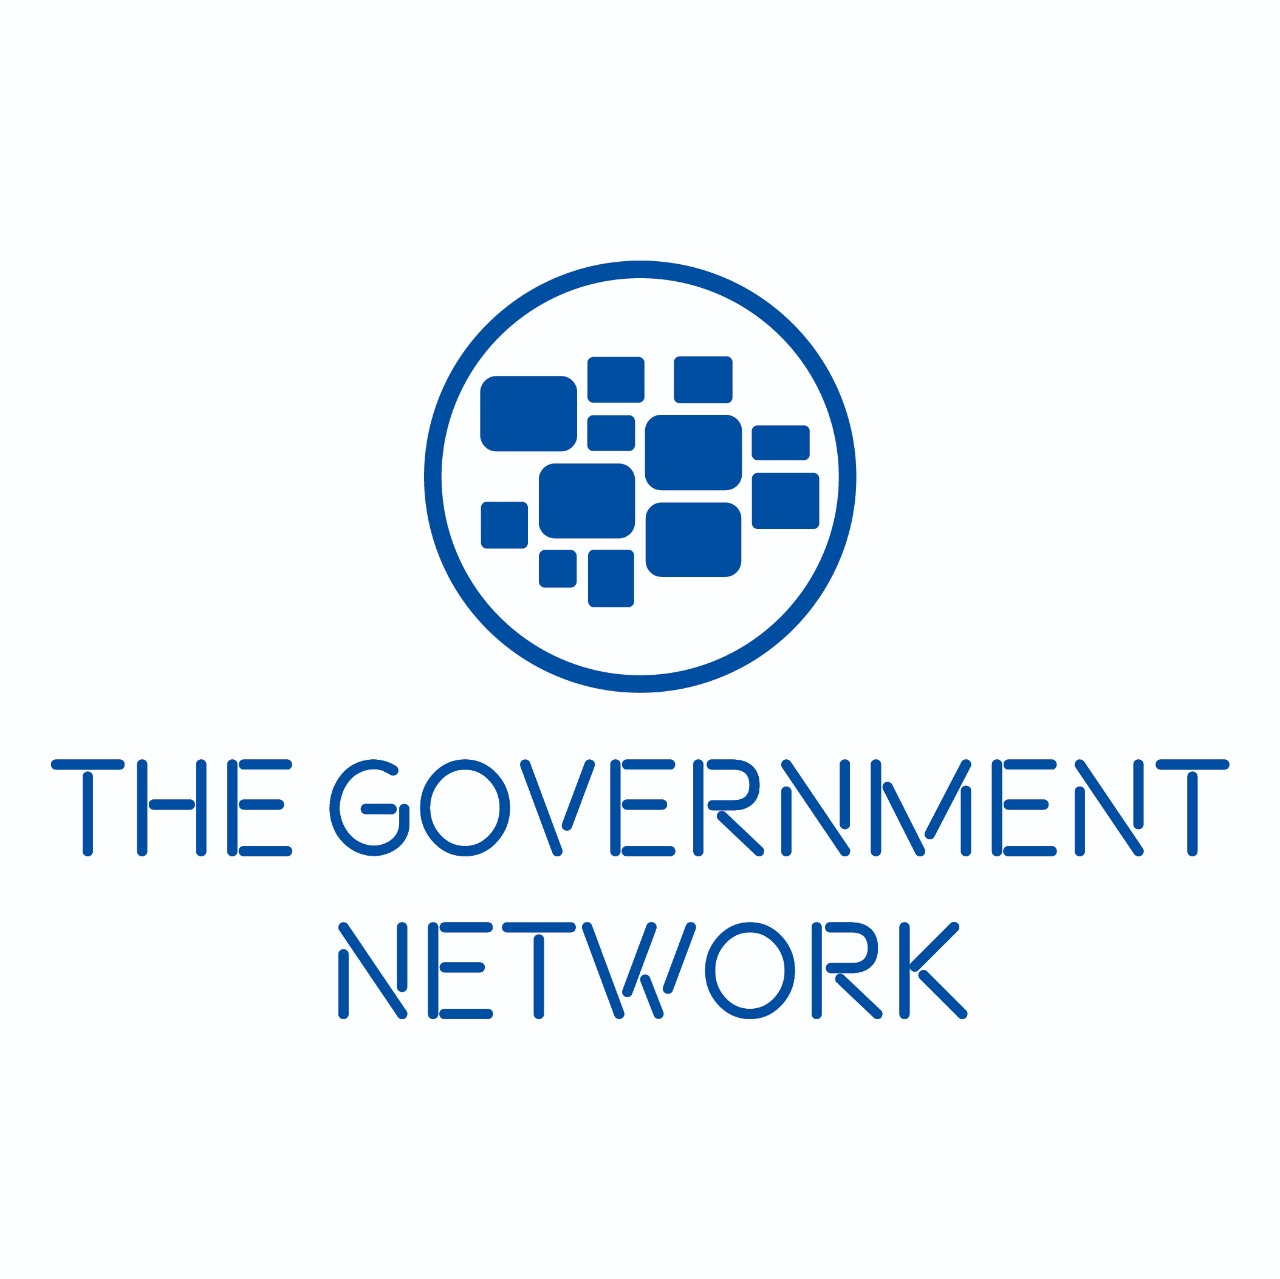 The Government network Logo